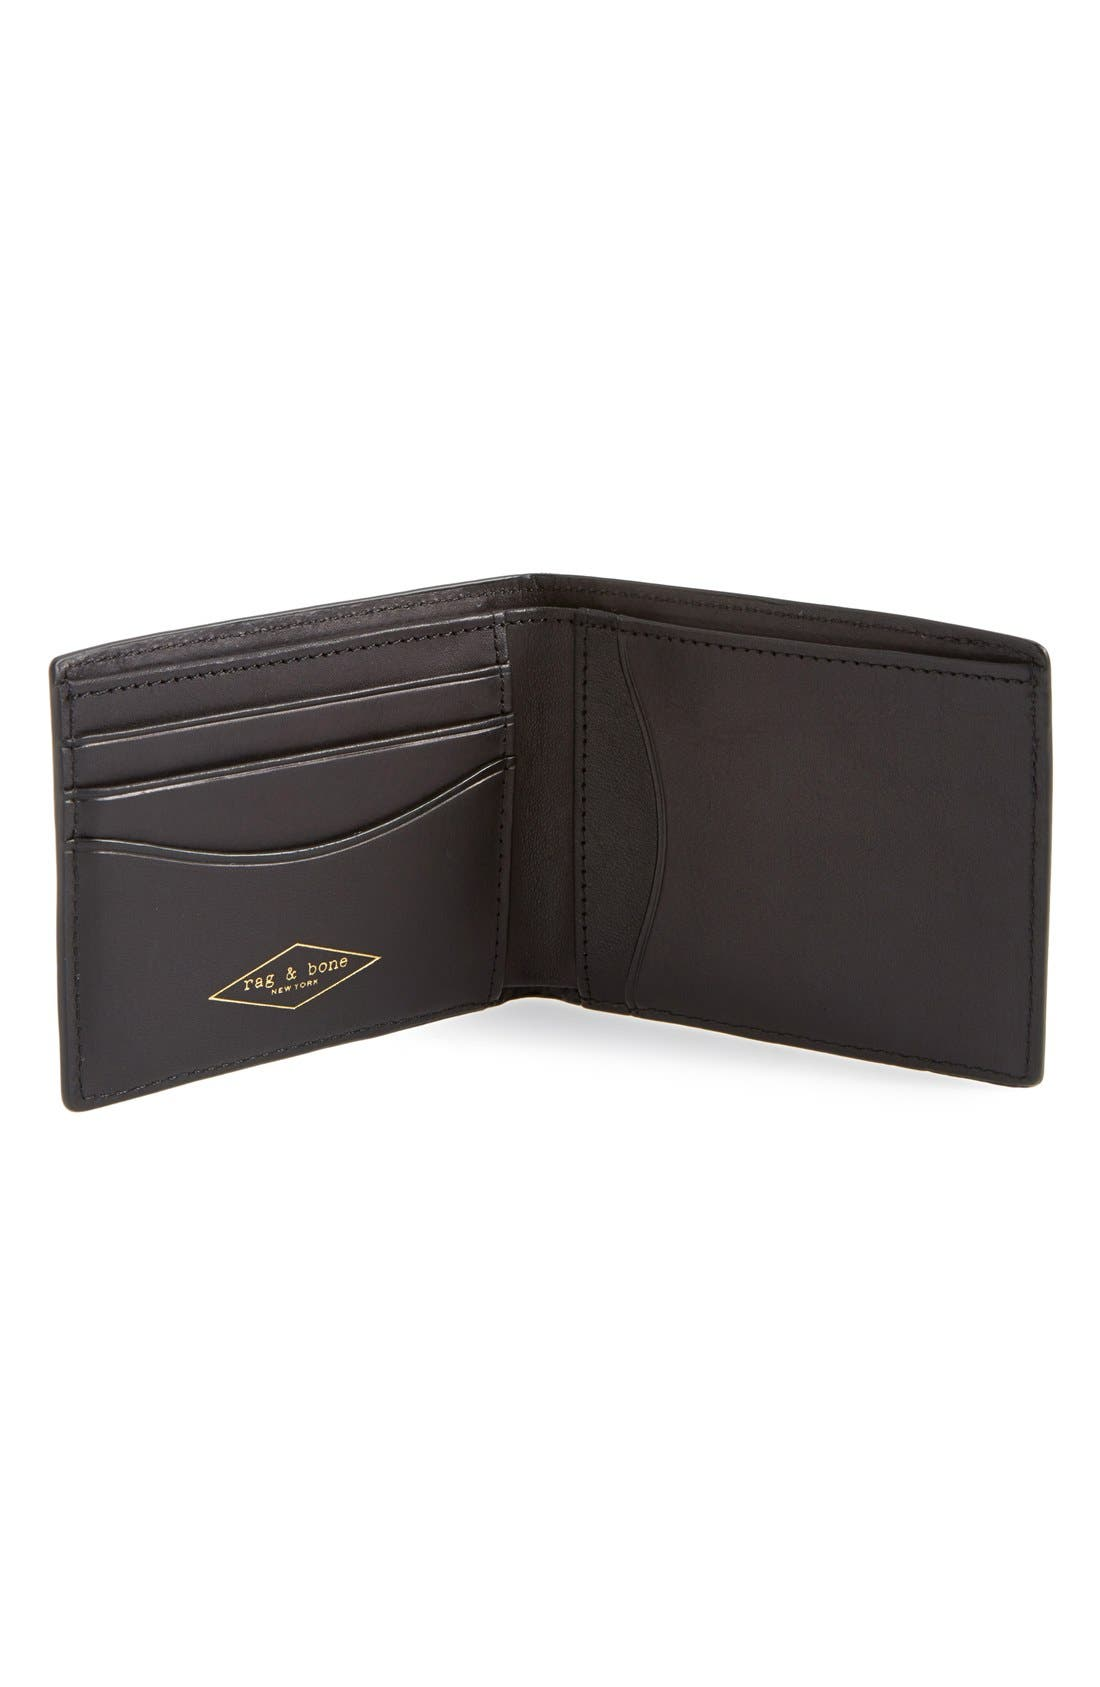 Hampshire Leather Bifold Wallet,                             Alternate thumbnail 2, color,                             002